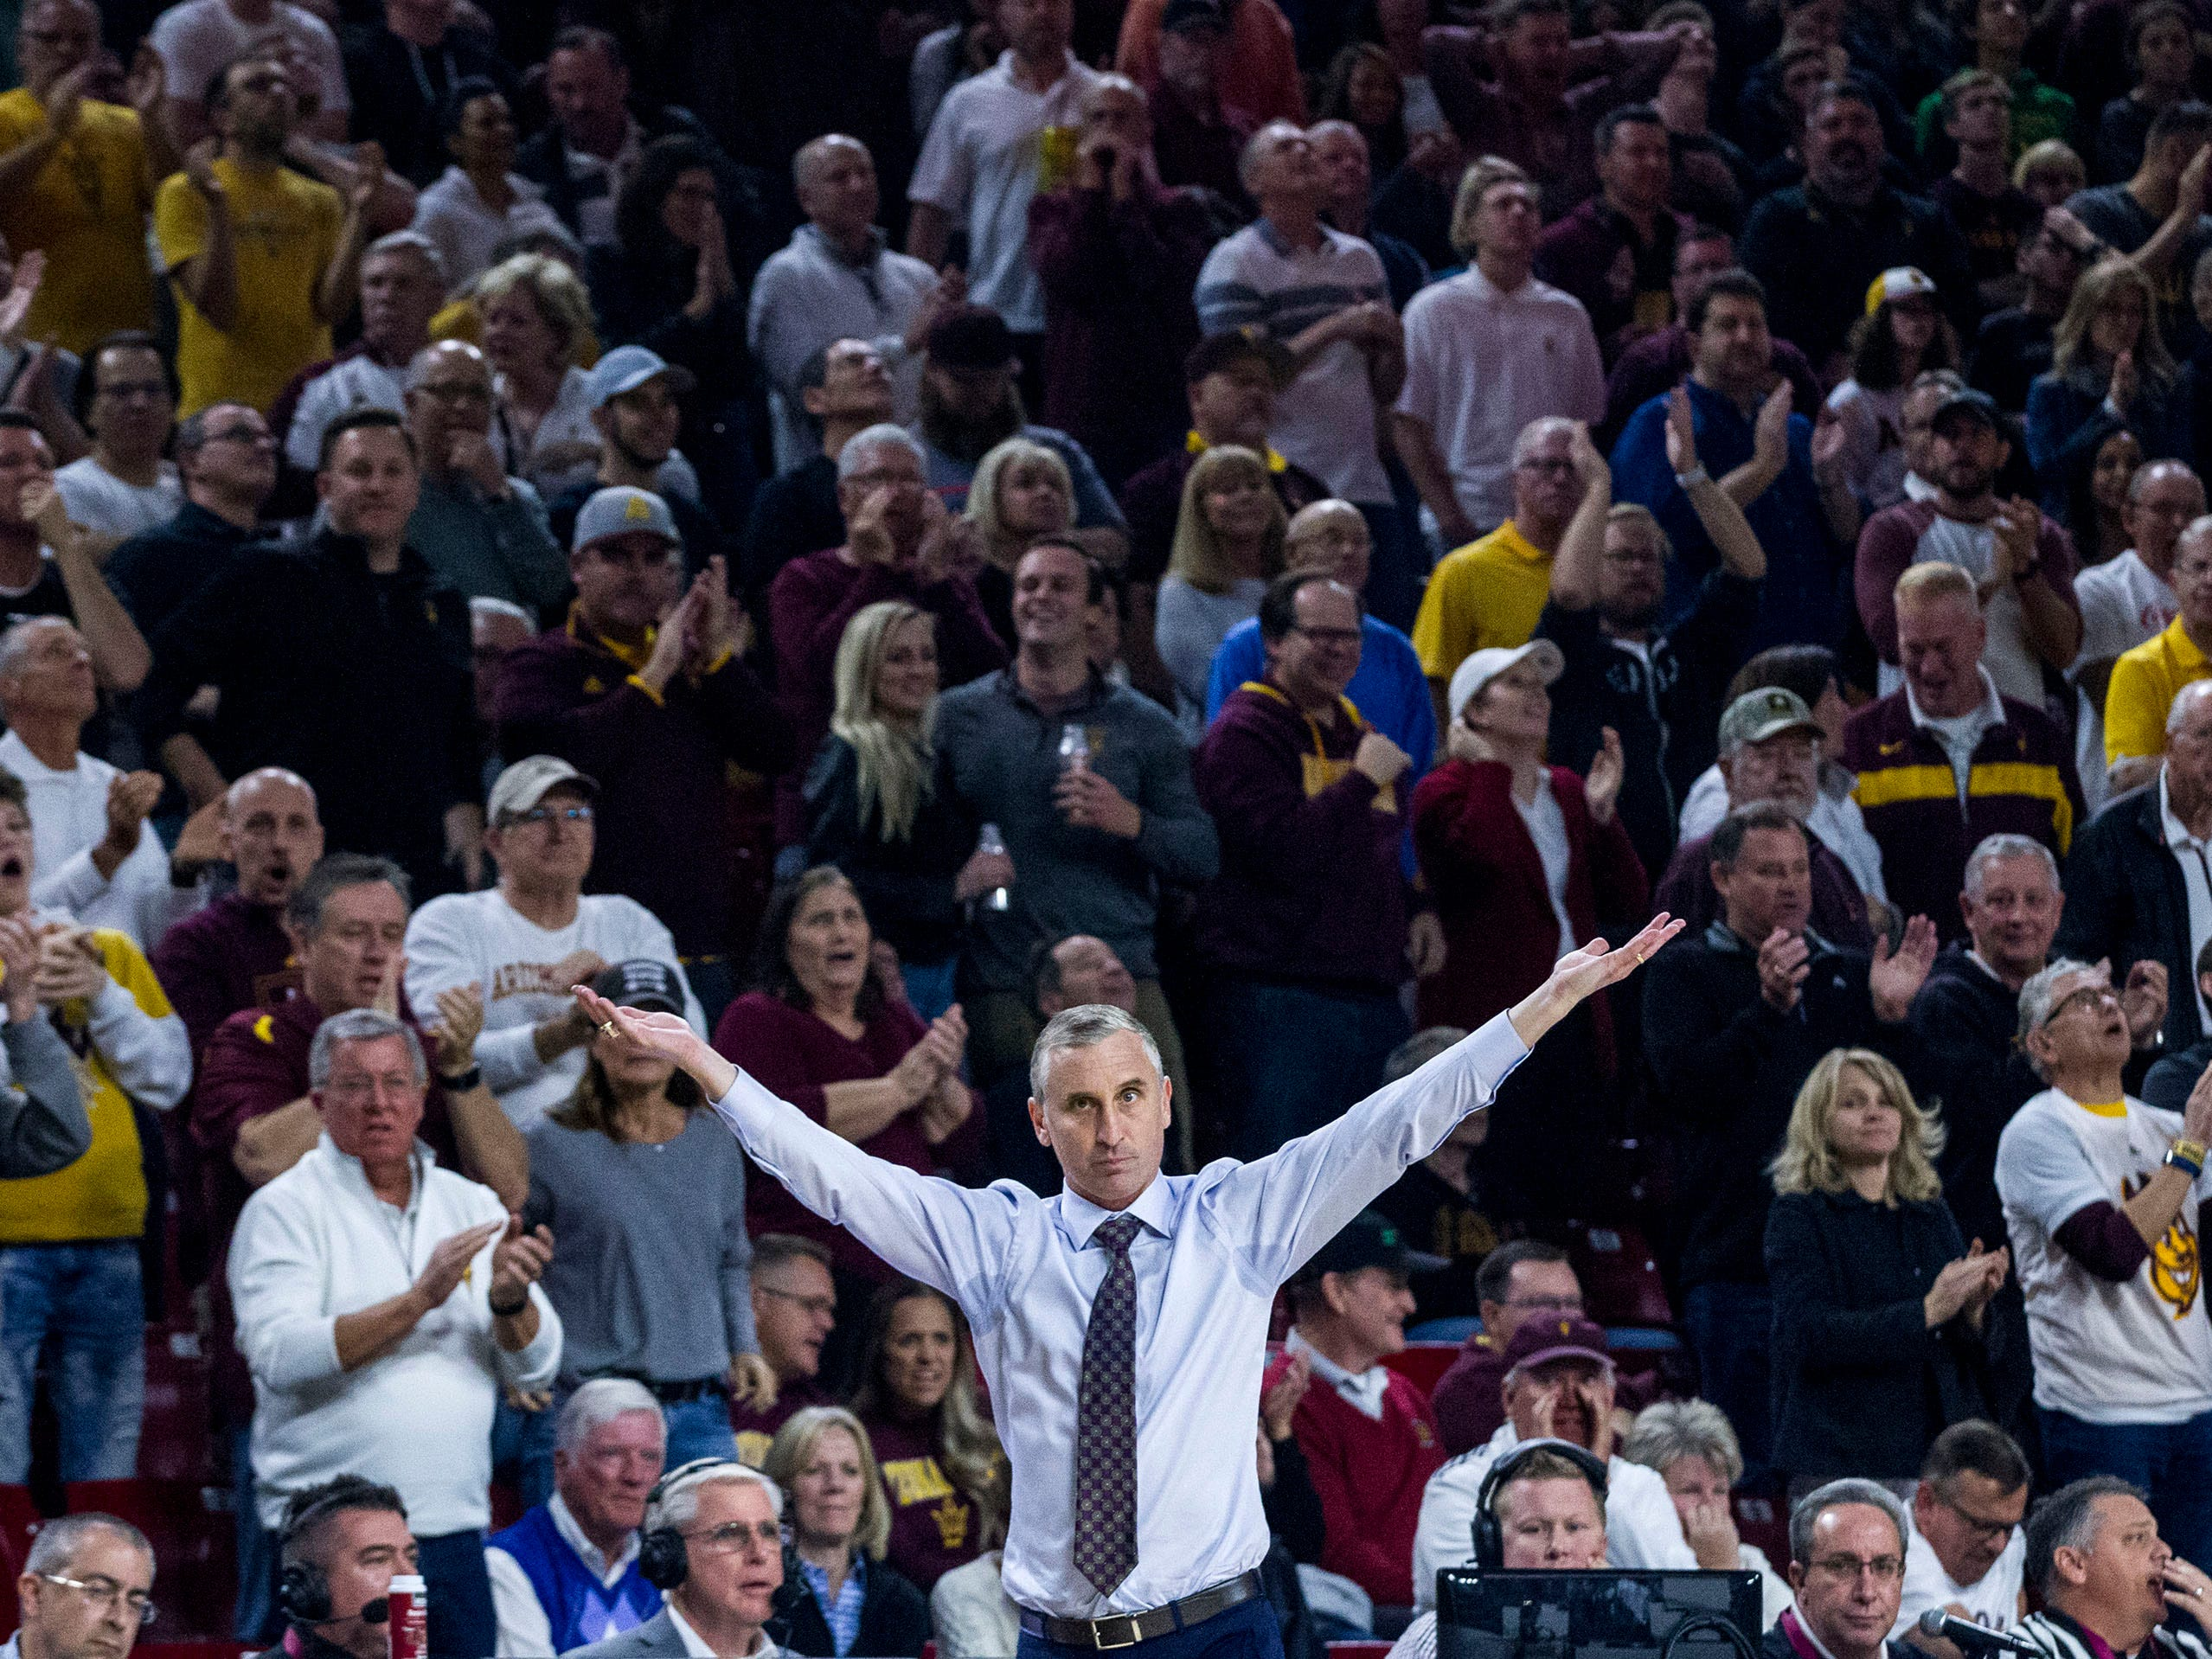 Arizona State coach Bobby Hurley gestures to the crowd during the second half against Oregon on Saturday, Jan. 19, 2019, in Tempe, Ariz. Arizona State won 78-64.(AP Photo/Darryl Webb)